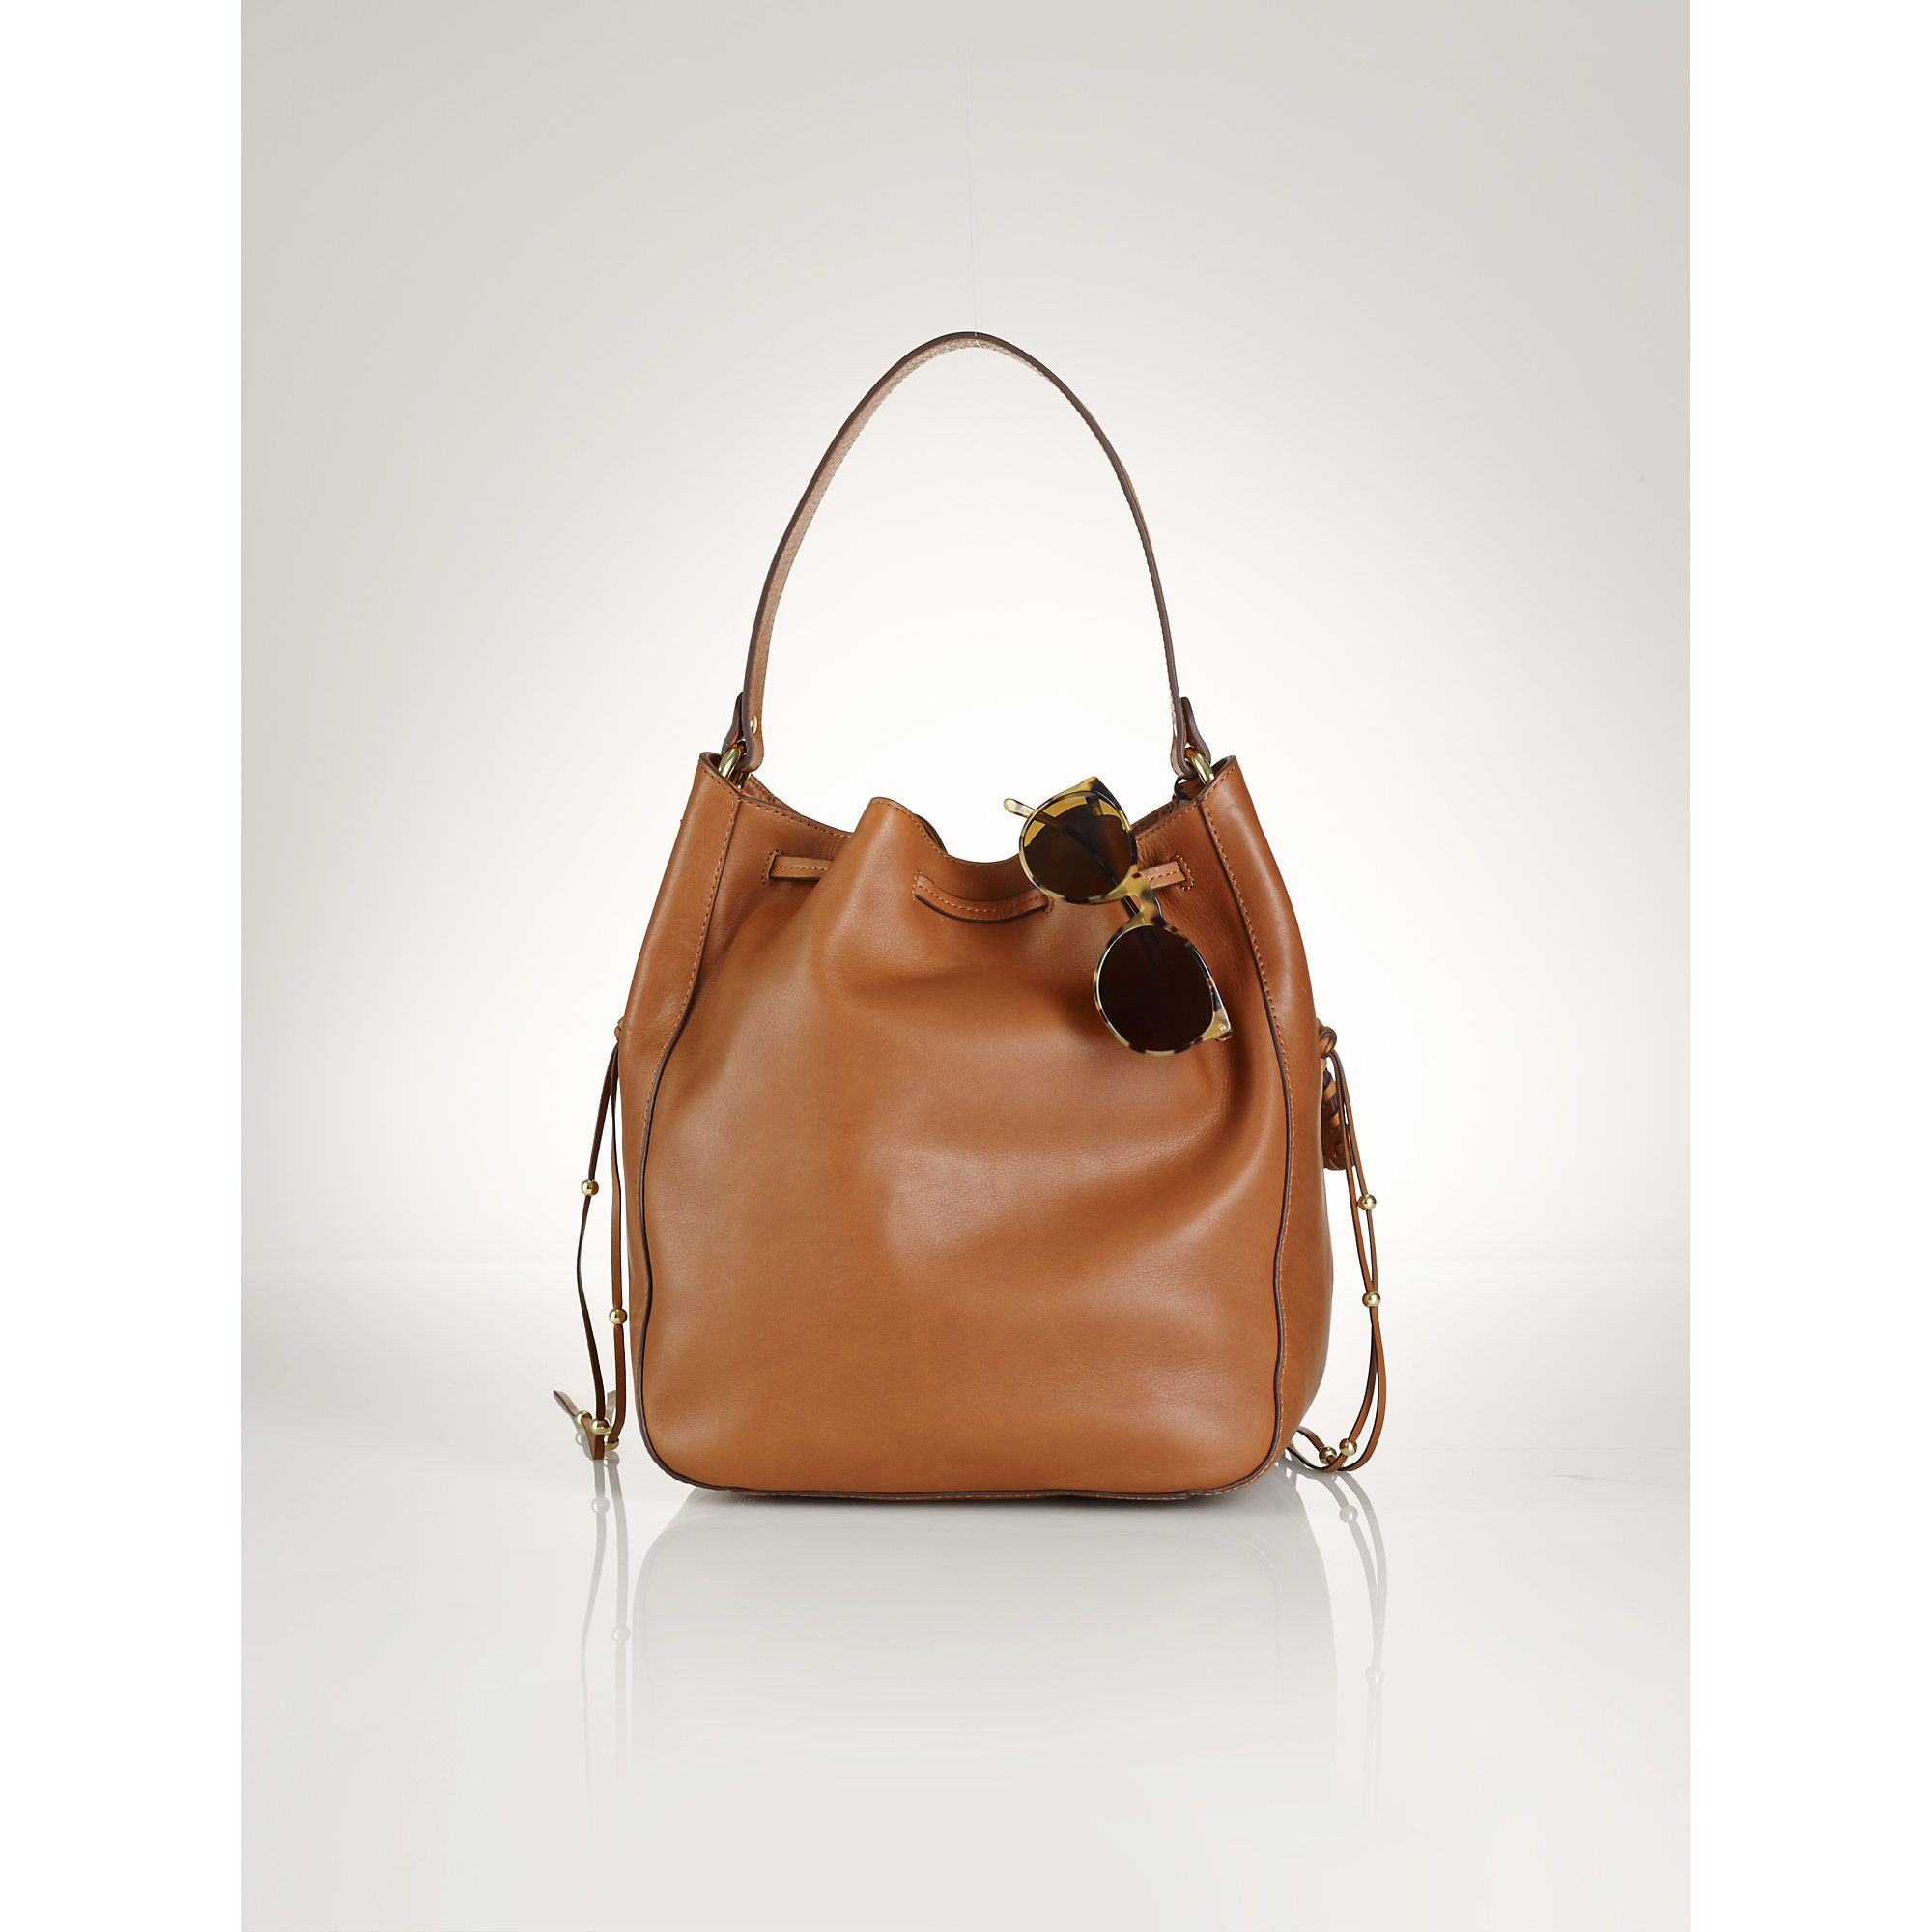 86458bfd92 ... uk lyst polo ralph lauren laced leather drawstring bag in brown 95d46  ee390